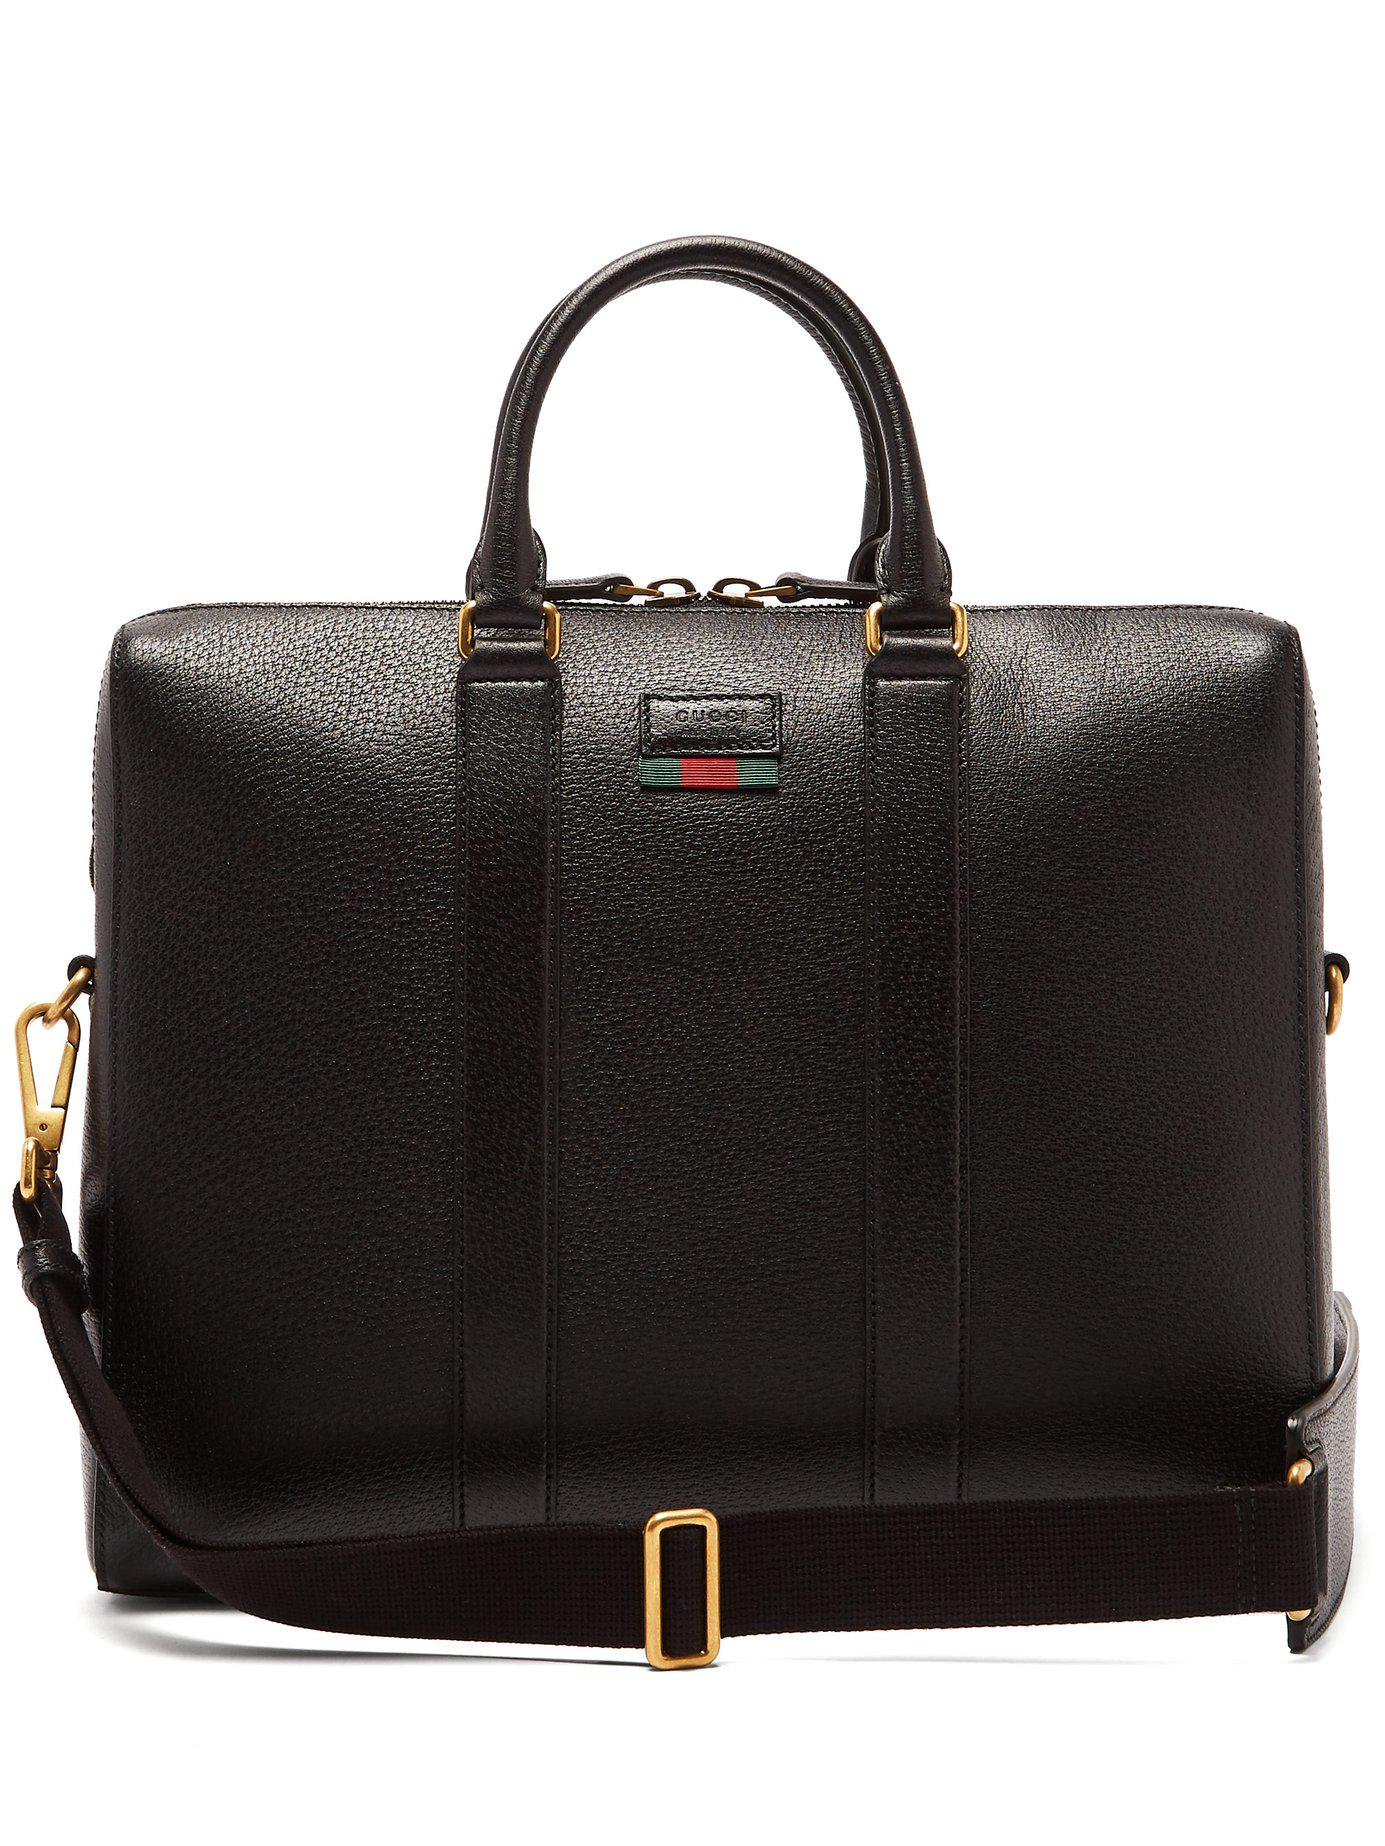 c17dccc12461 Gucci Web Stripe Leather Briefcase in Black for Men - Lyst